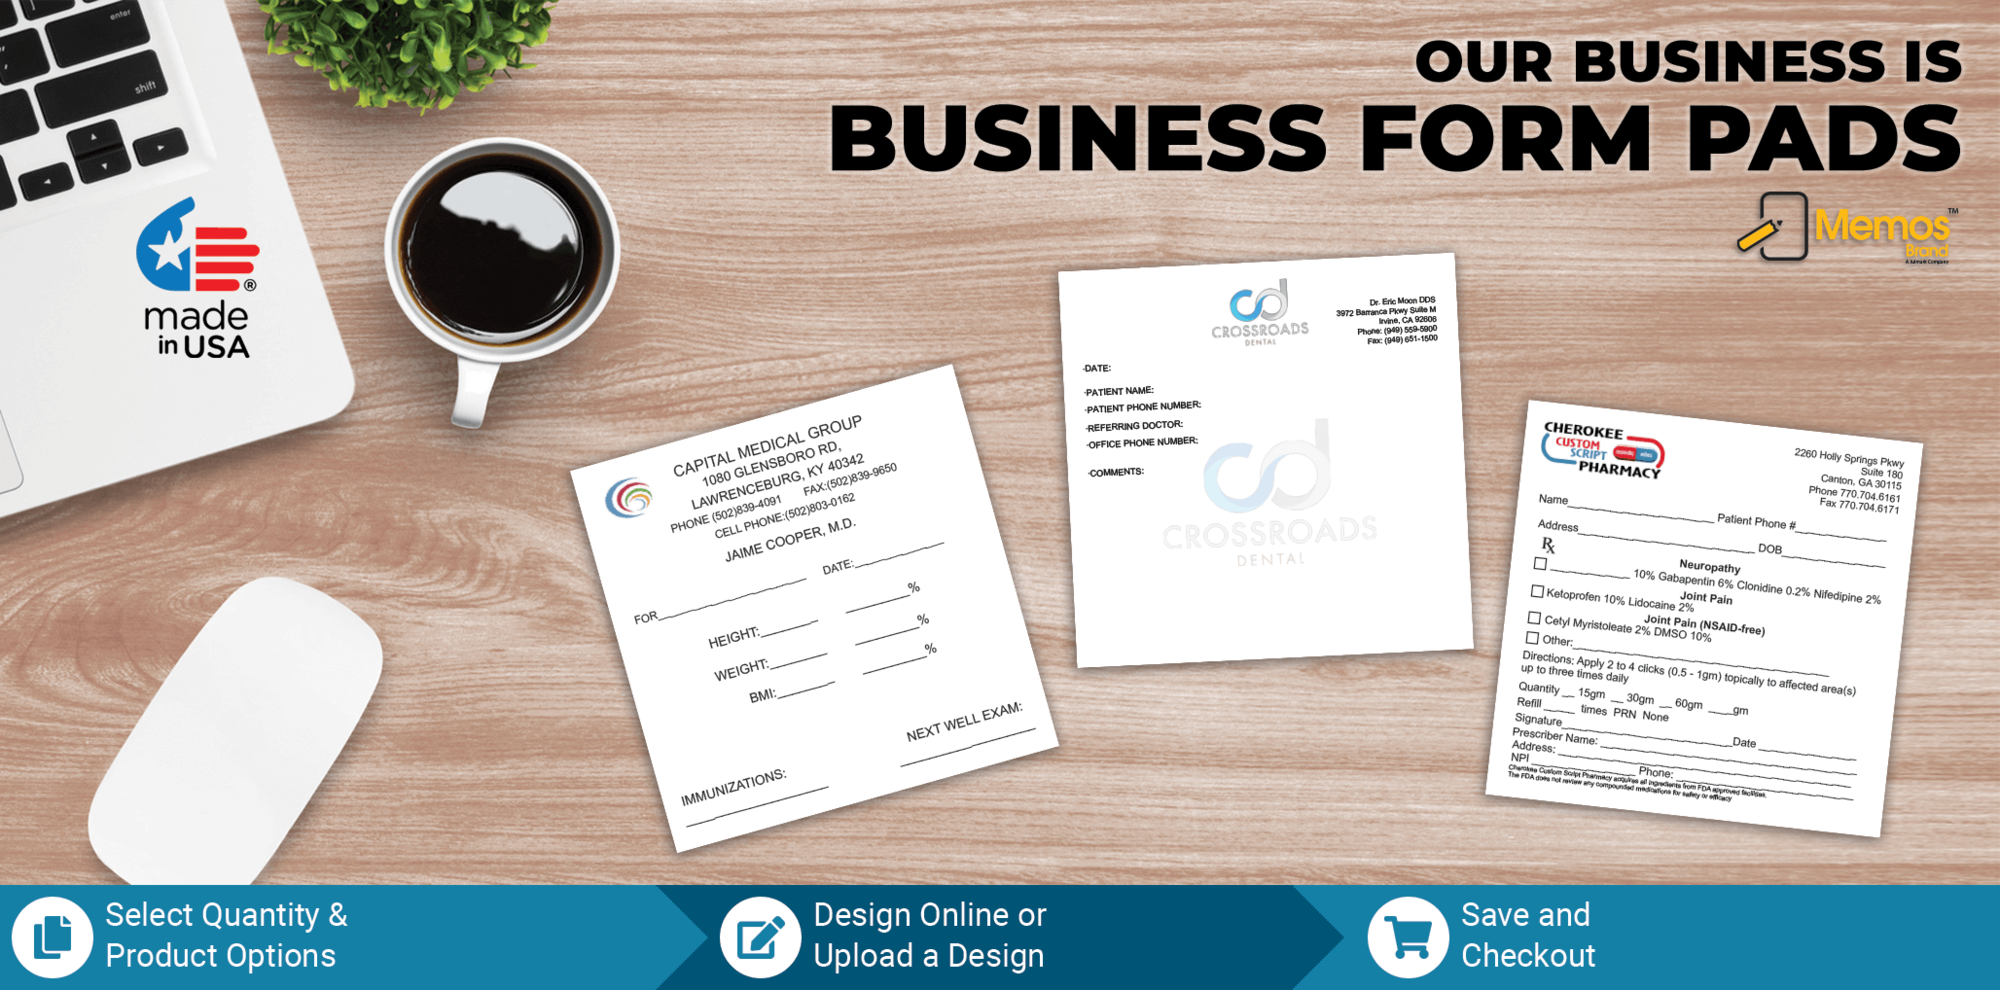 https://printpps.com/images/products_gallery_images/Banner_5x5-BusinessForm-Pads_ProdFeat_Cover.png